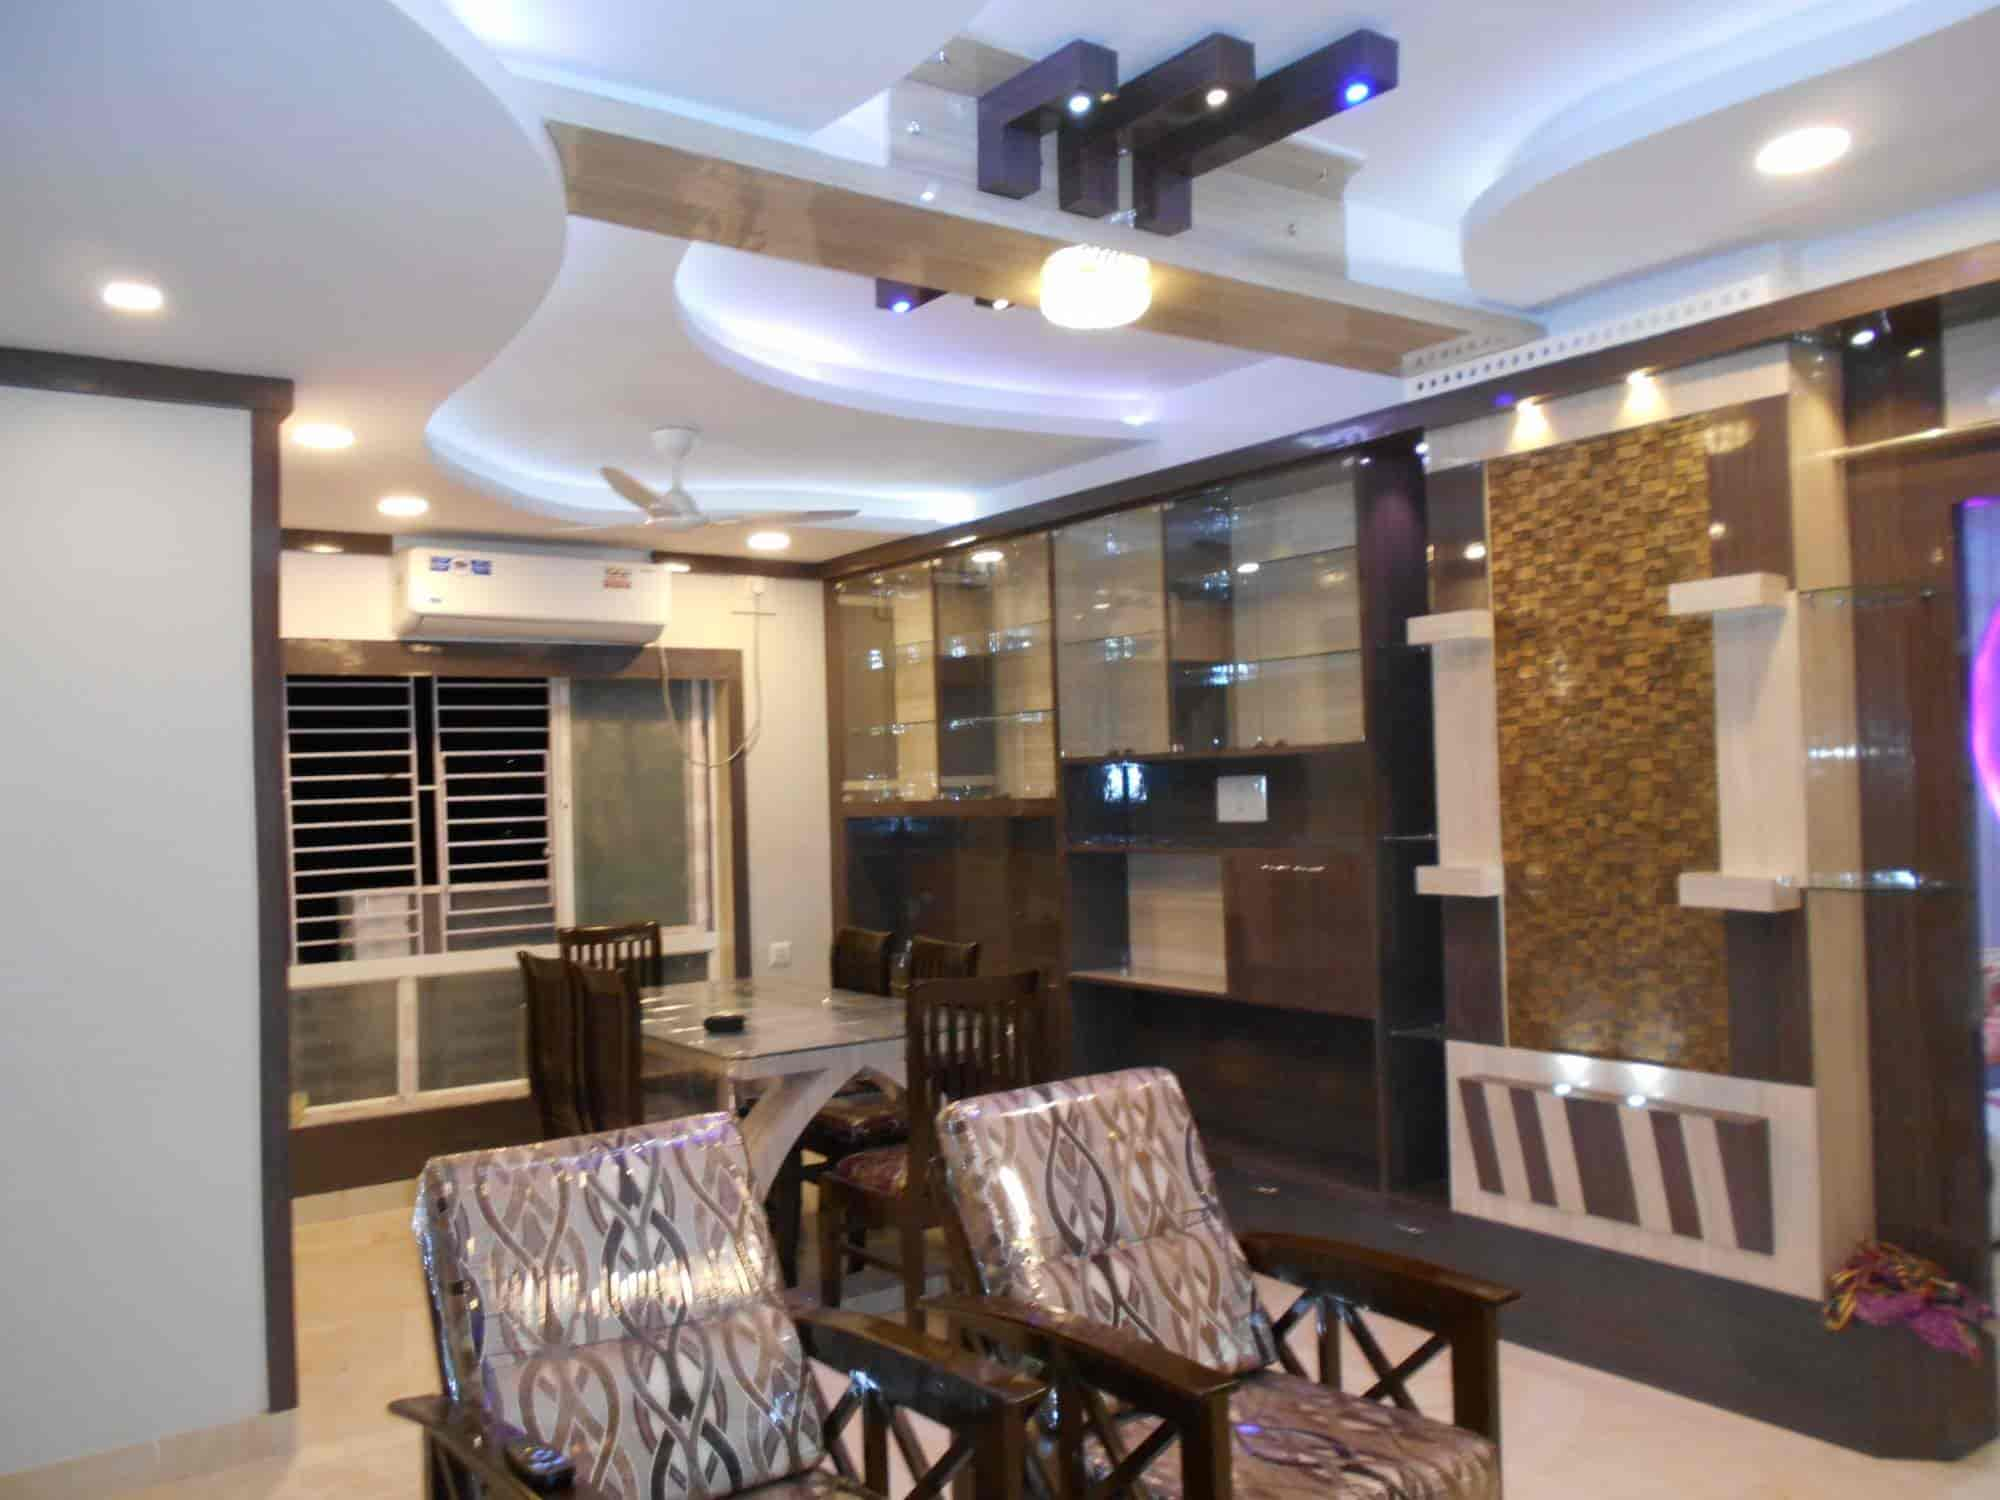 Sen creative interior design photos barasat kolkata pictures images gallery justdial